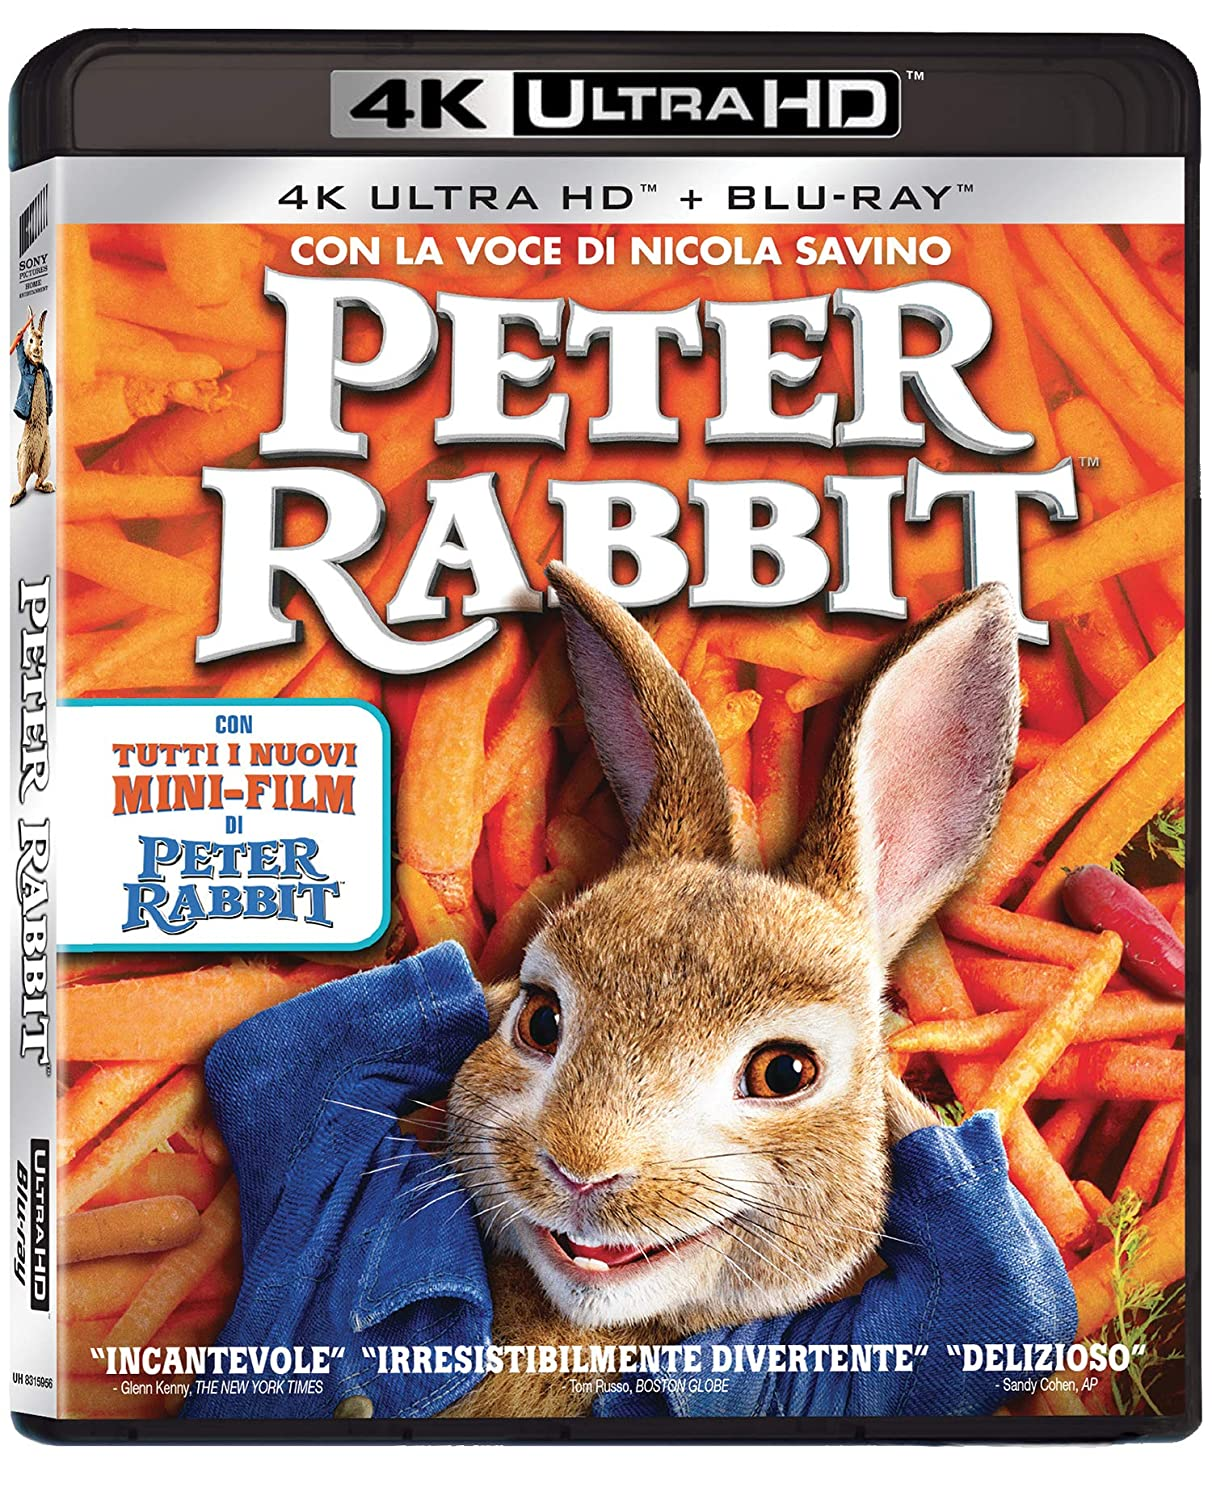 PETER RABBIT (4K UHD+BLU-RAY)